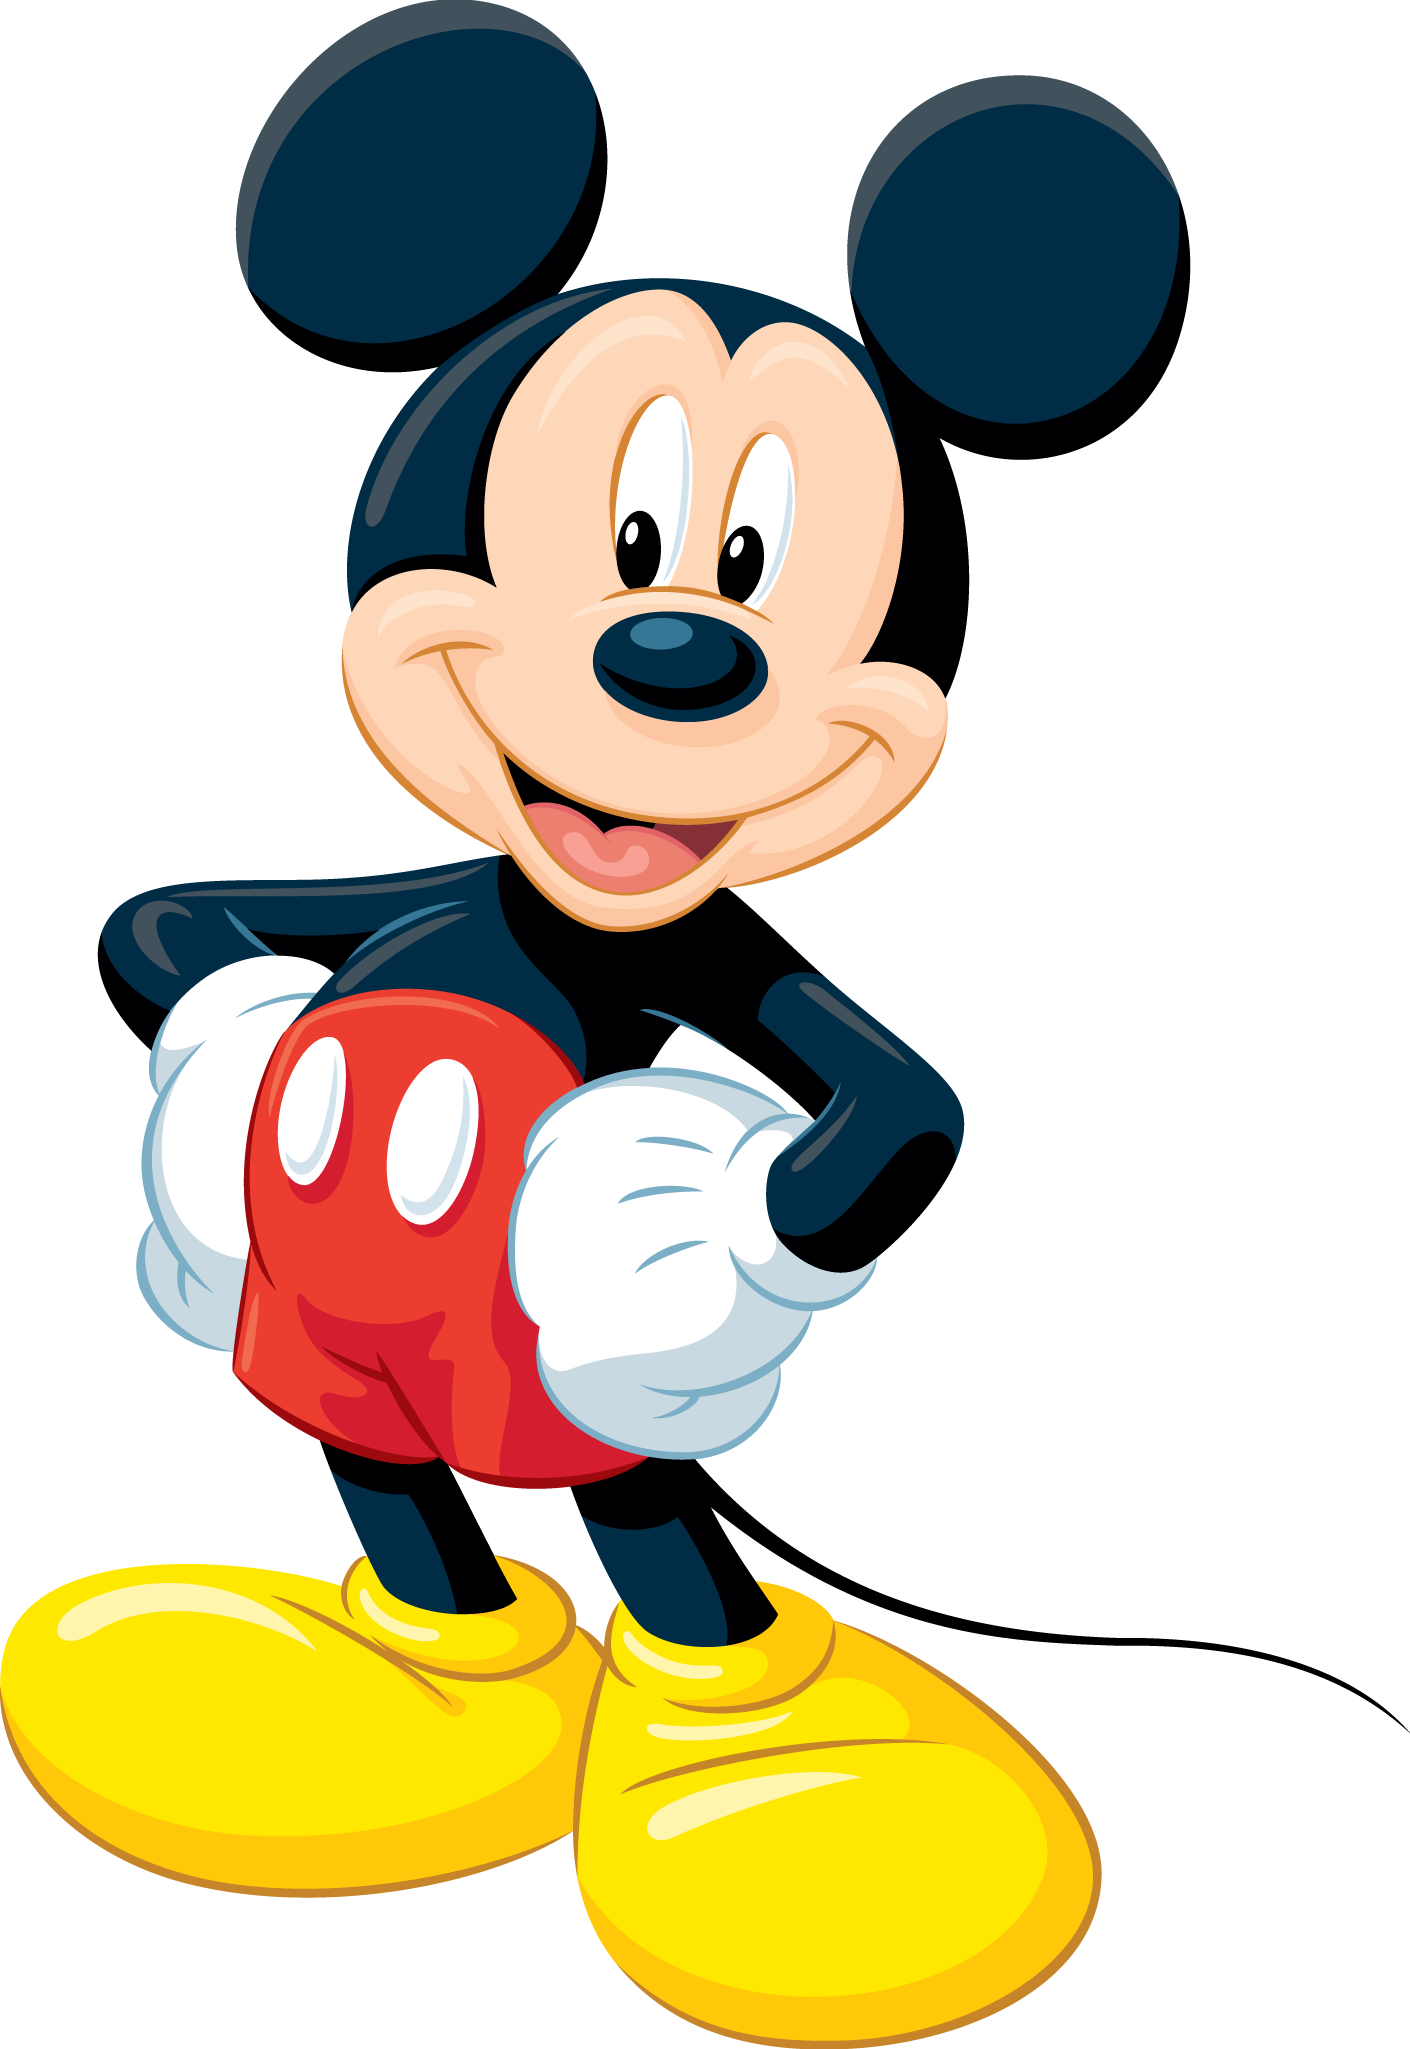 One clipart mickey mouse. Png images free download